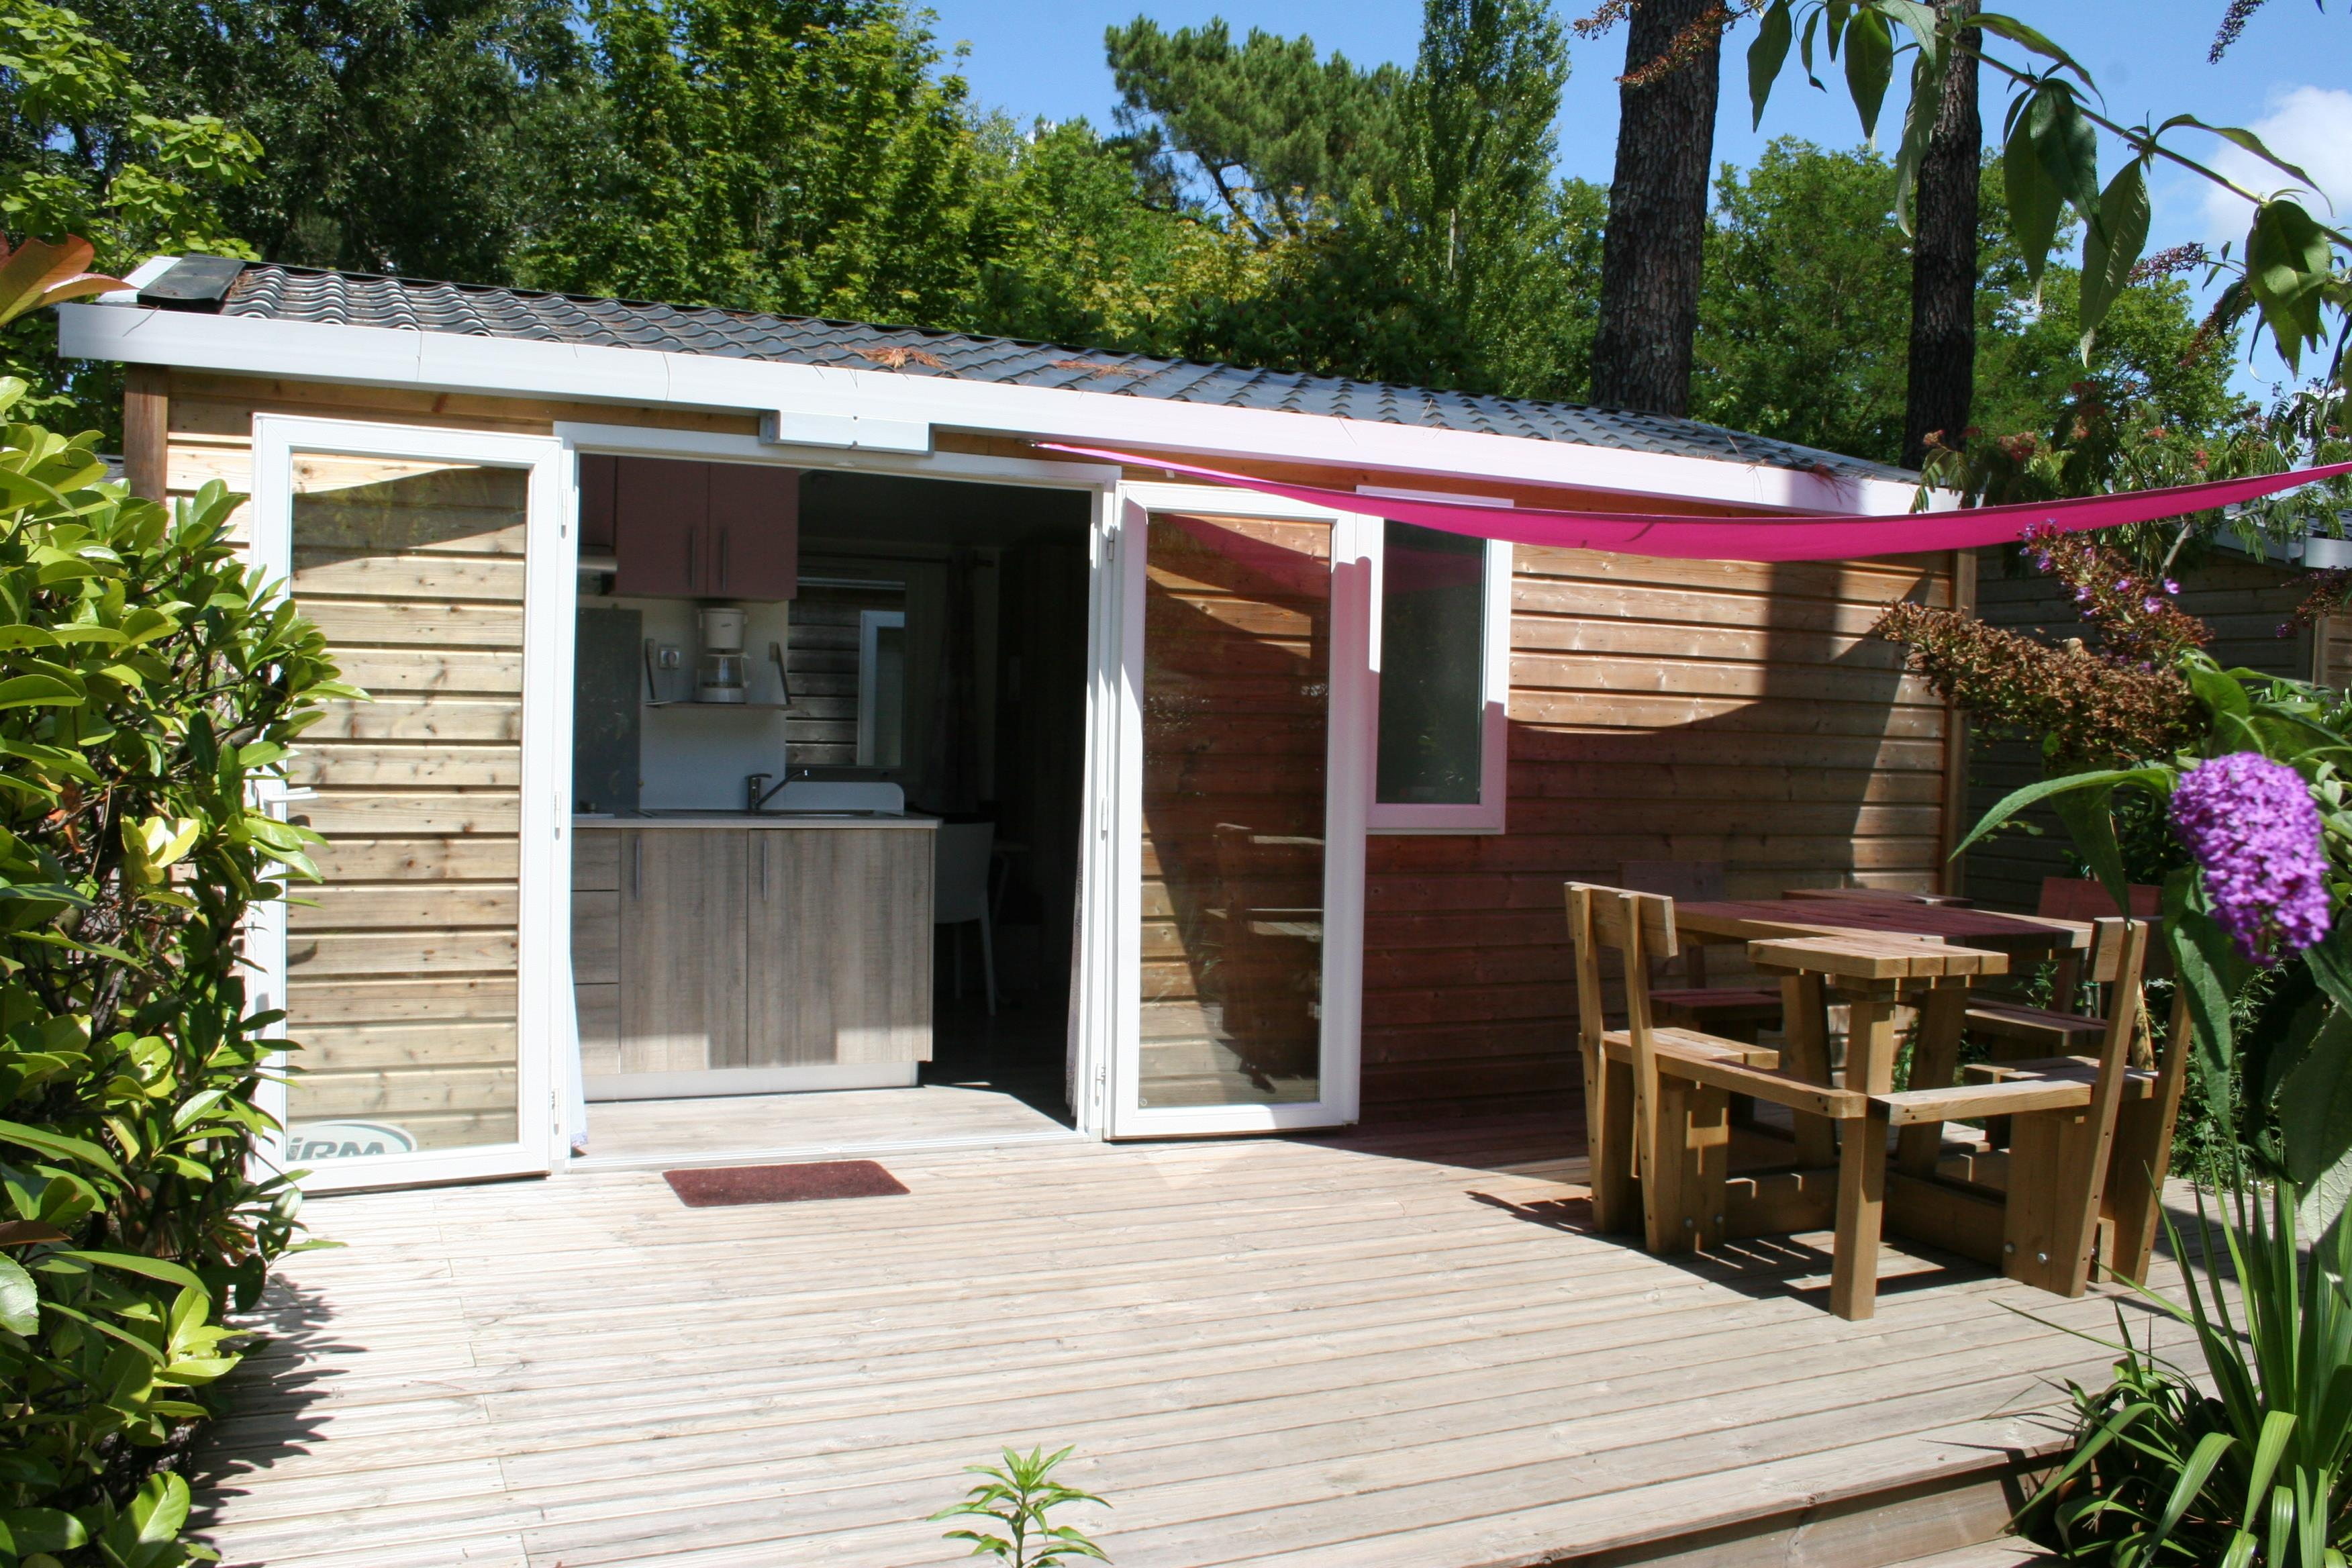 Mobil-home Grand Confort 24m² - Modèle 2013 - Terrasse non couverte